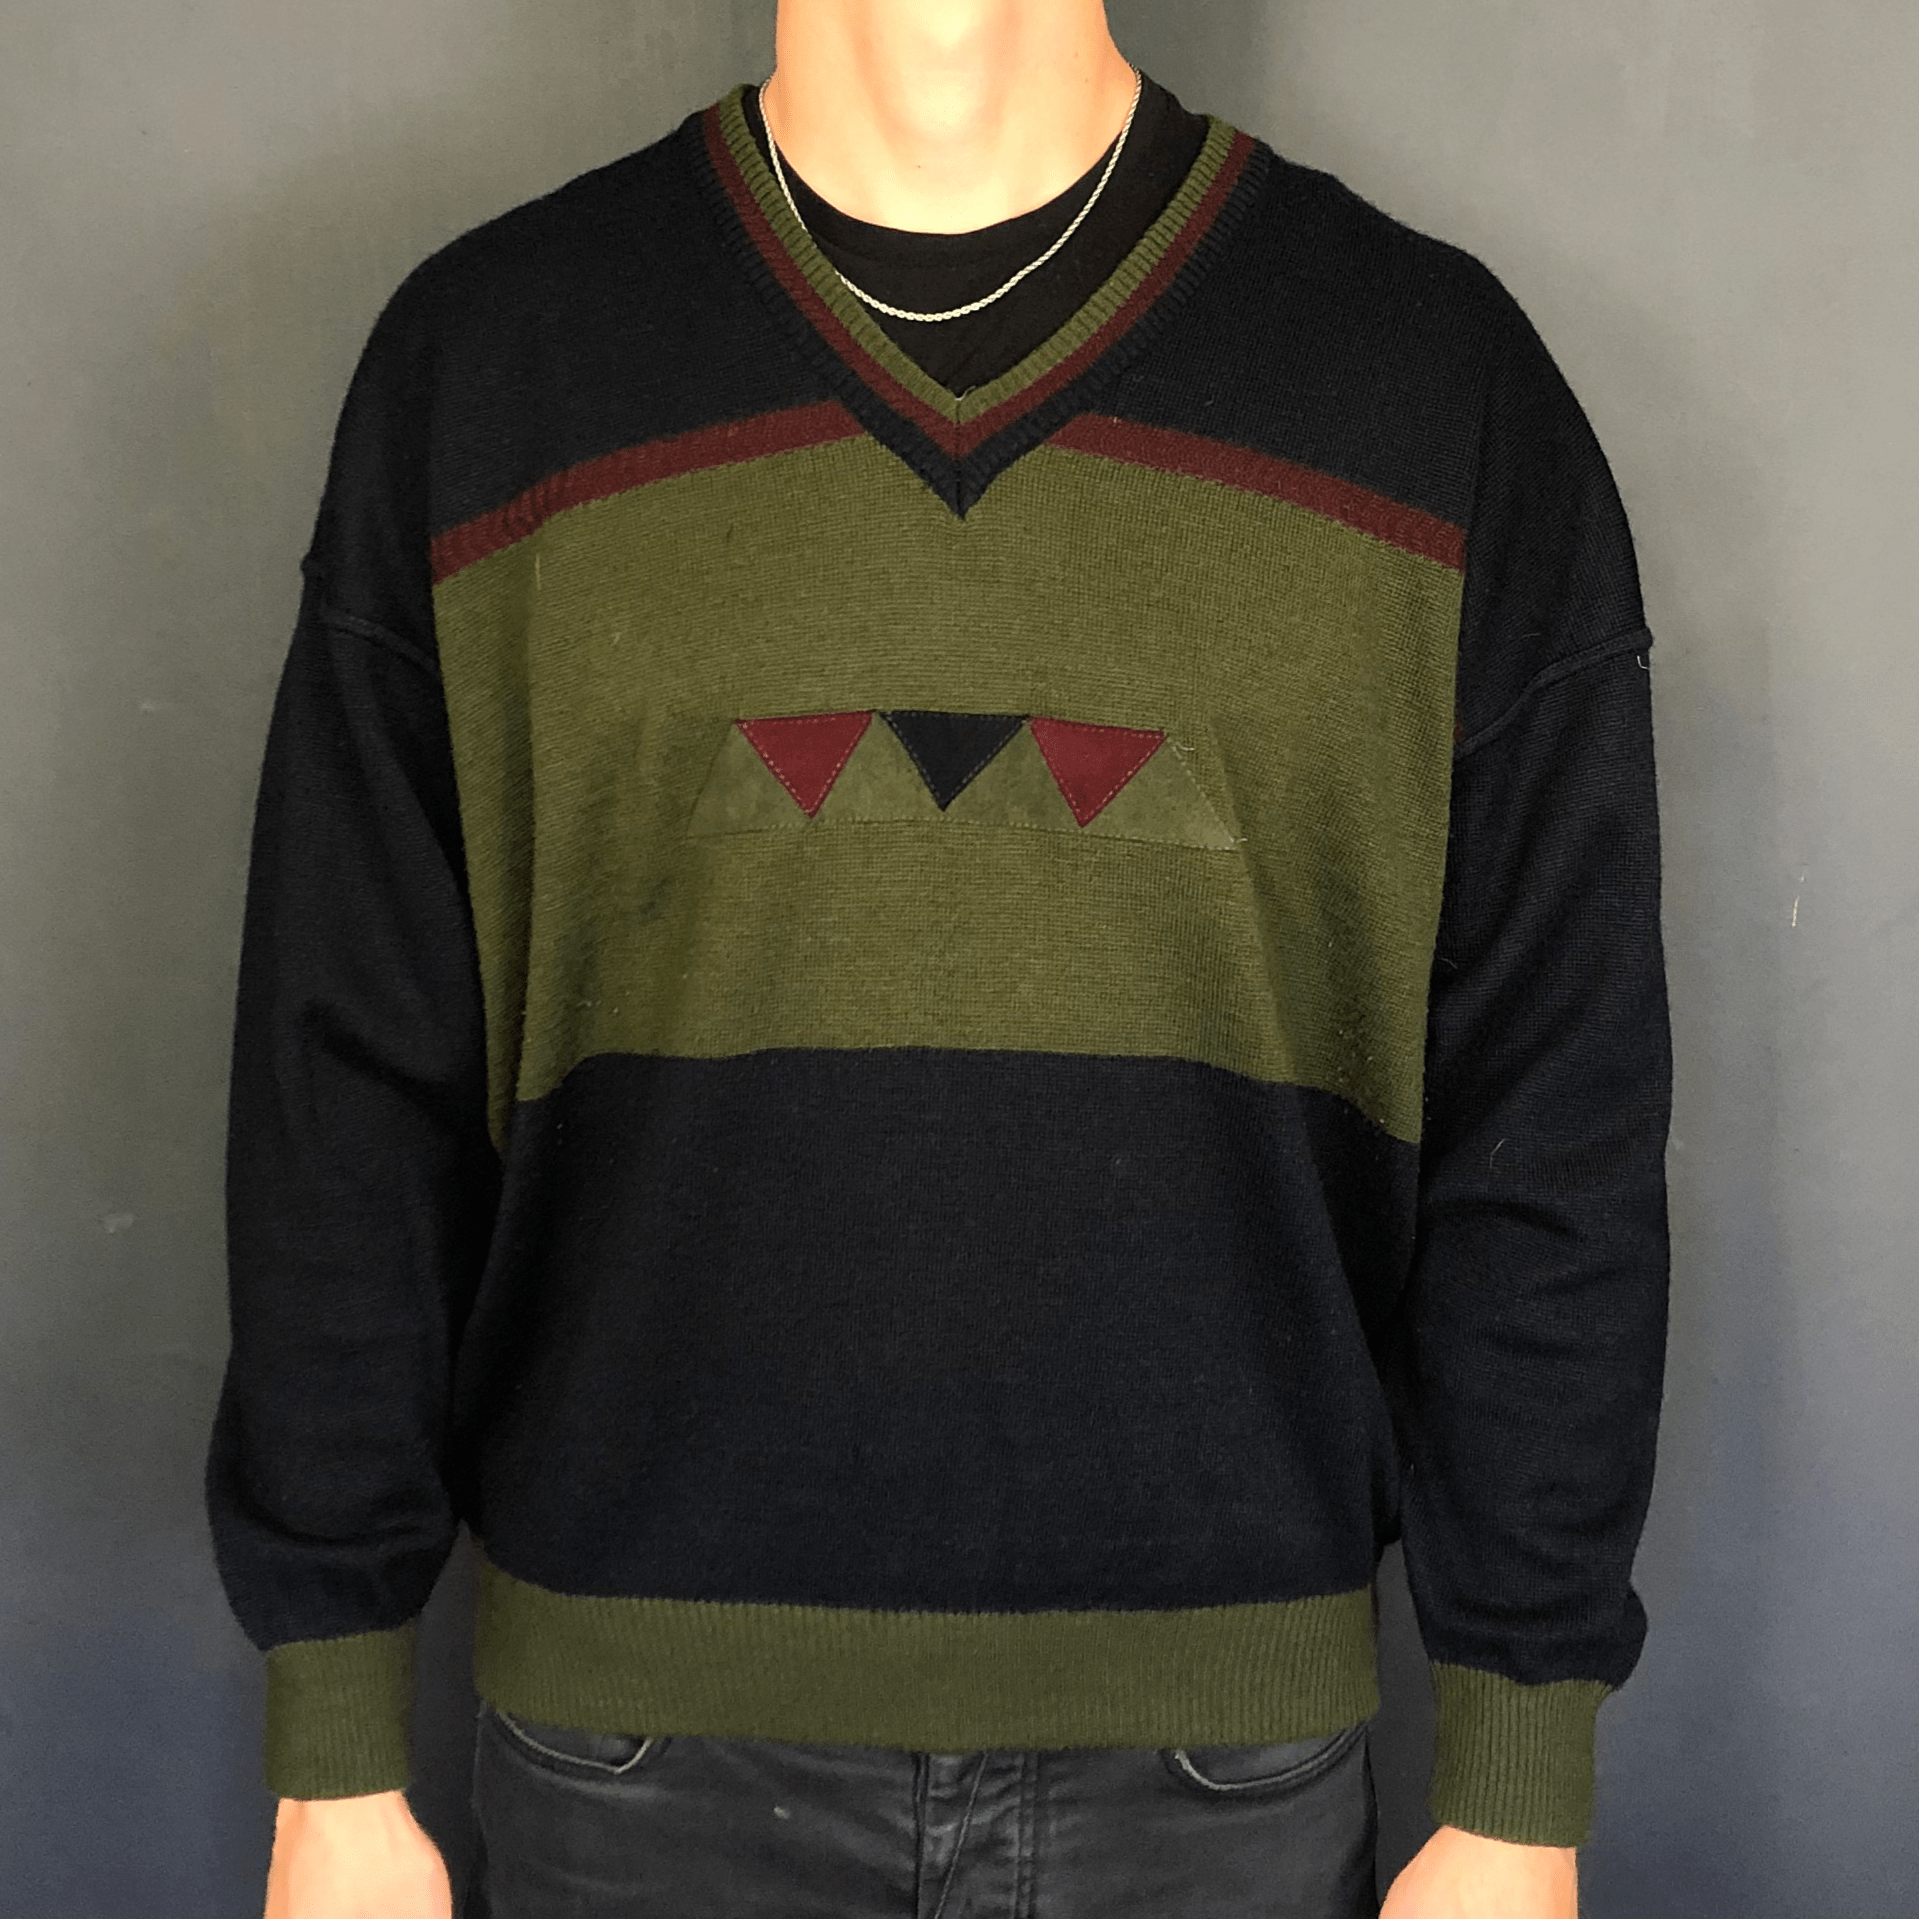 VINTAGE KNITTED JUMPER / SWEATER - Large - Vintique Clothing